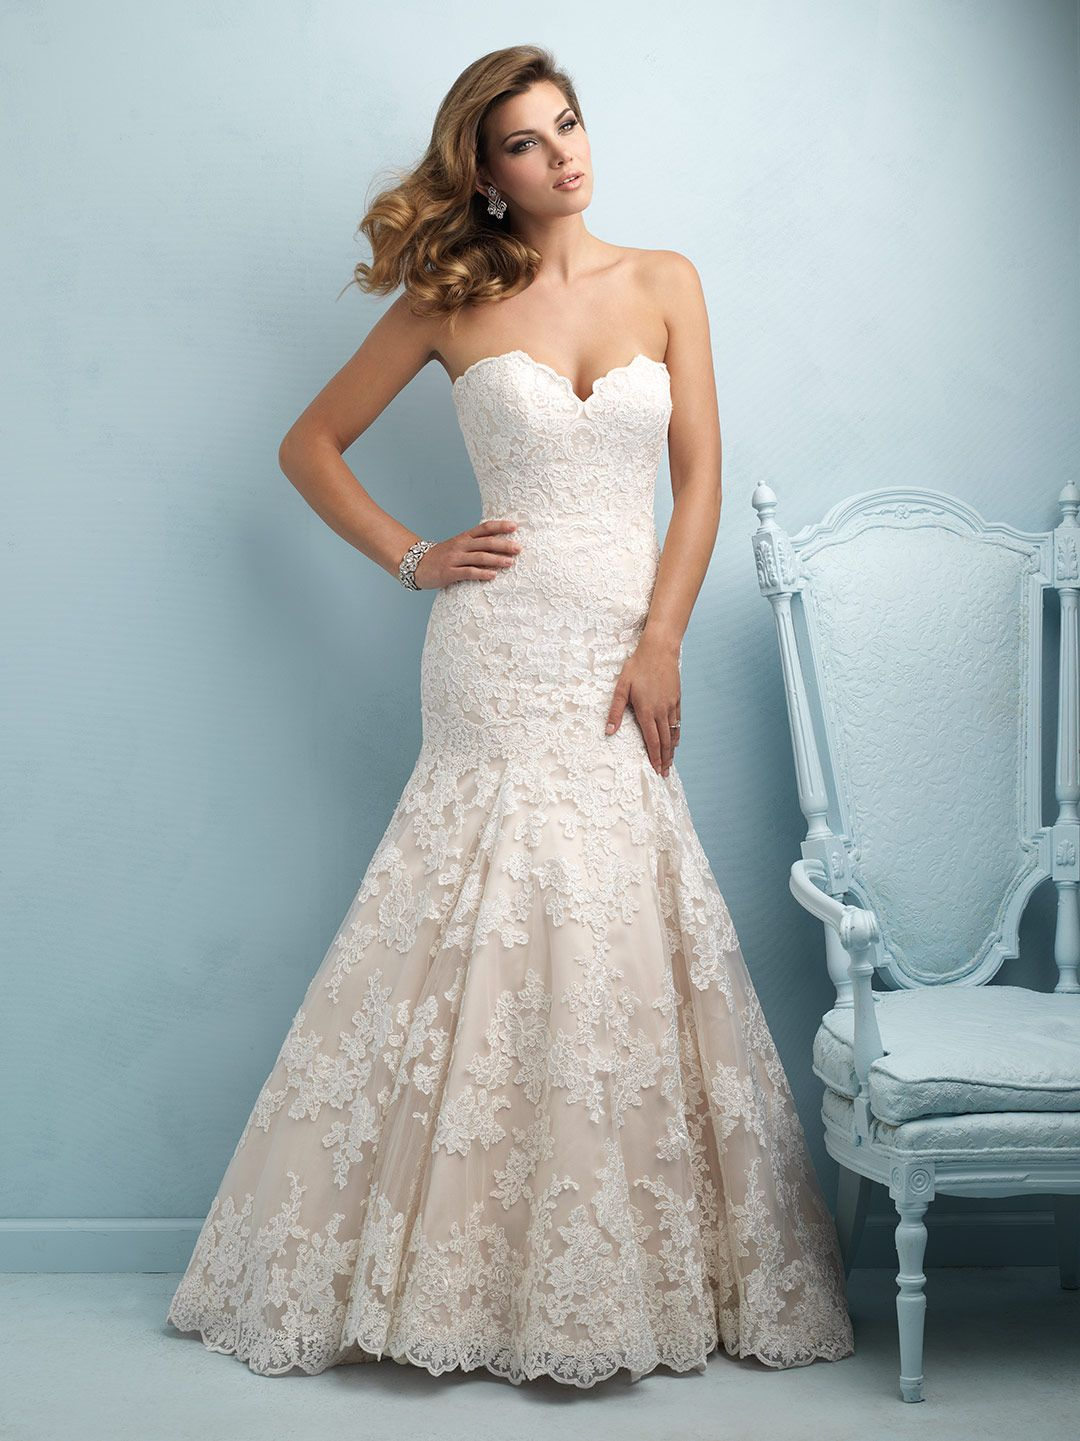 Related Item Image | Dress | Pinterest | Allure bridals, Gowns and ...